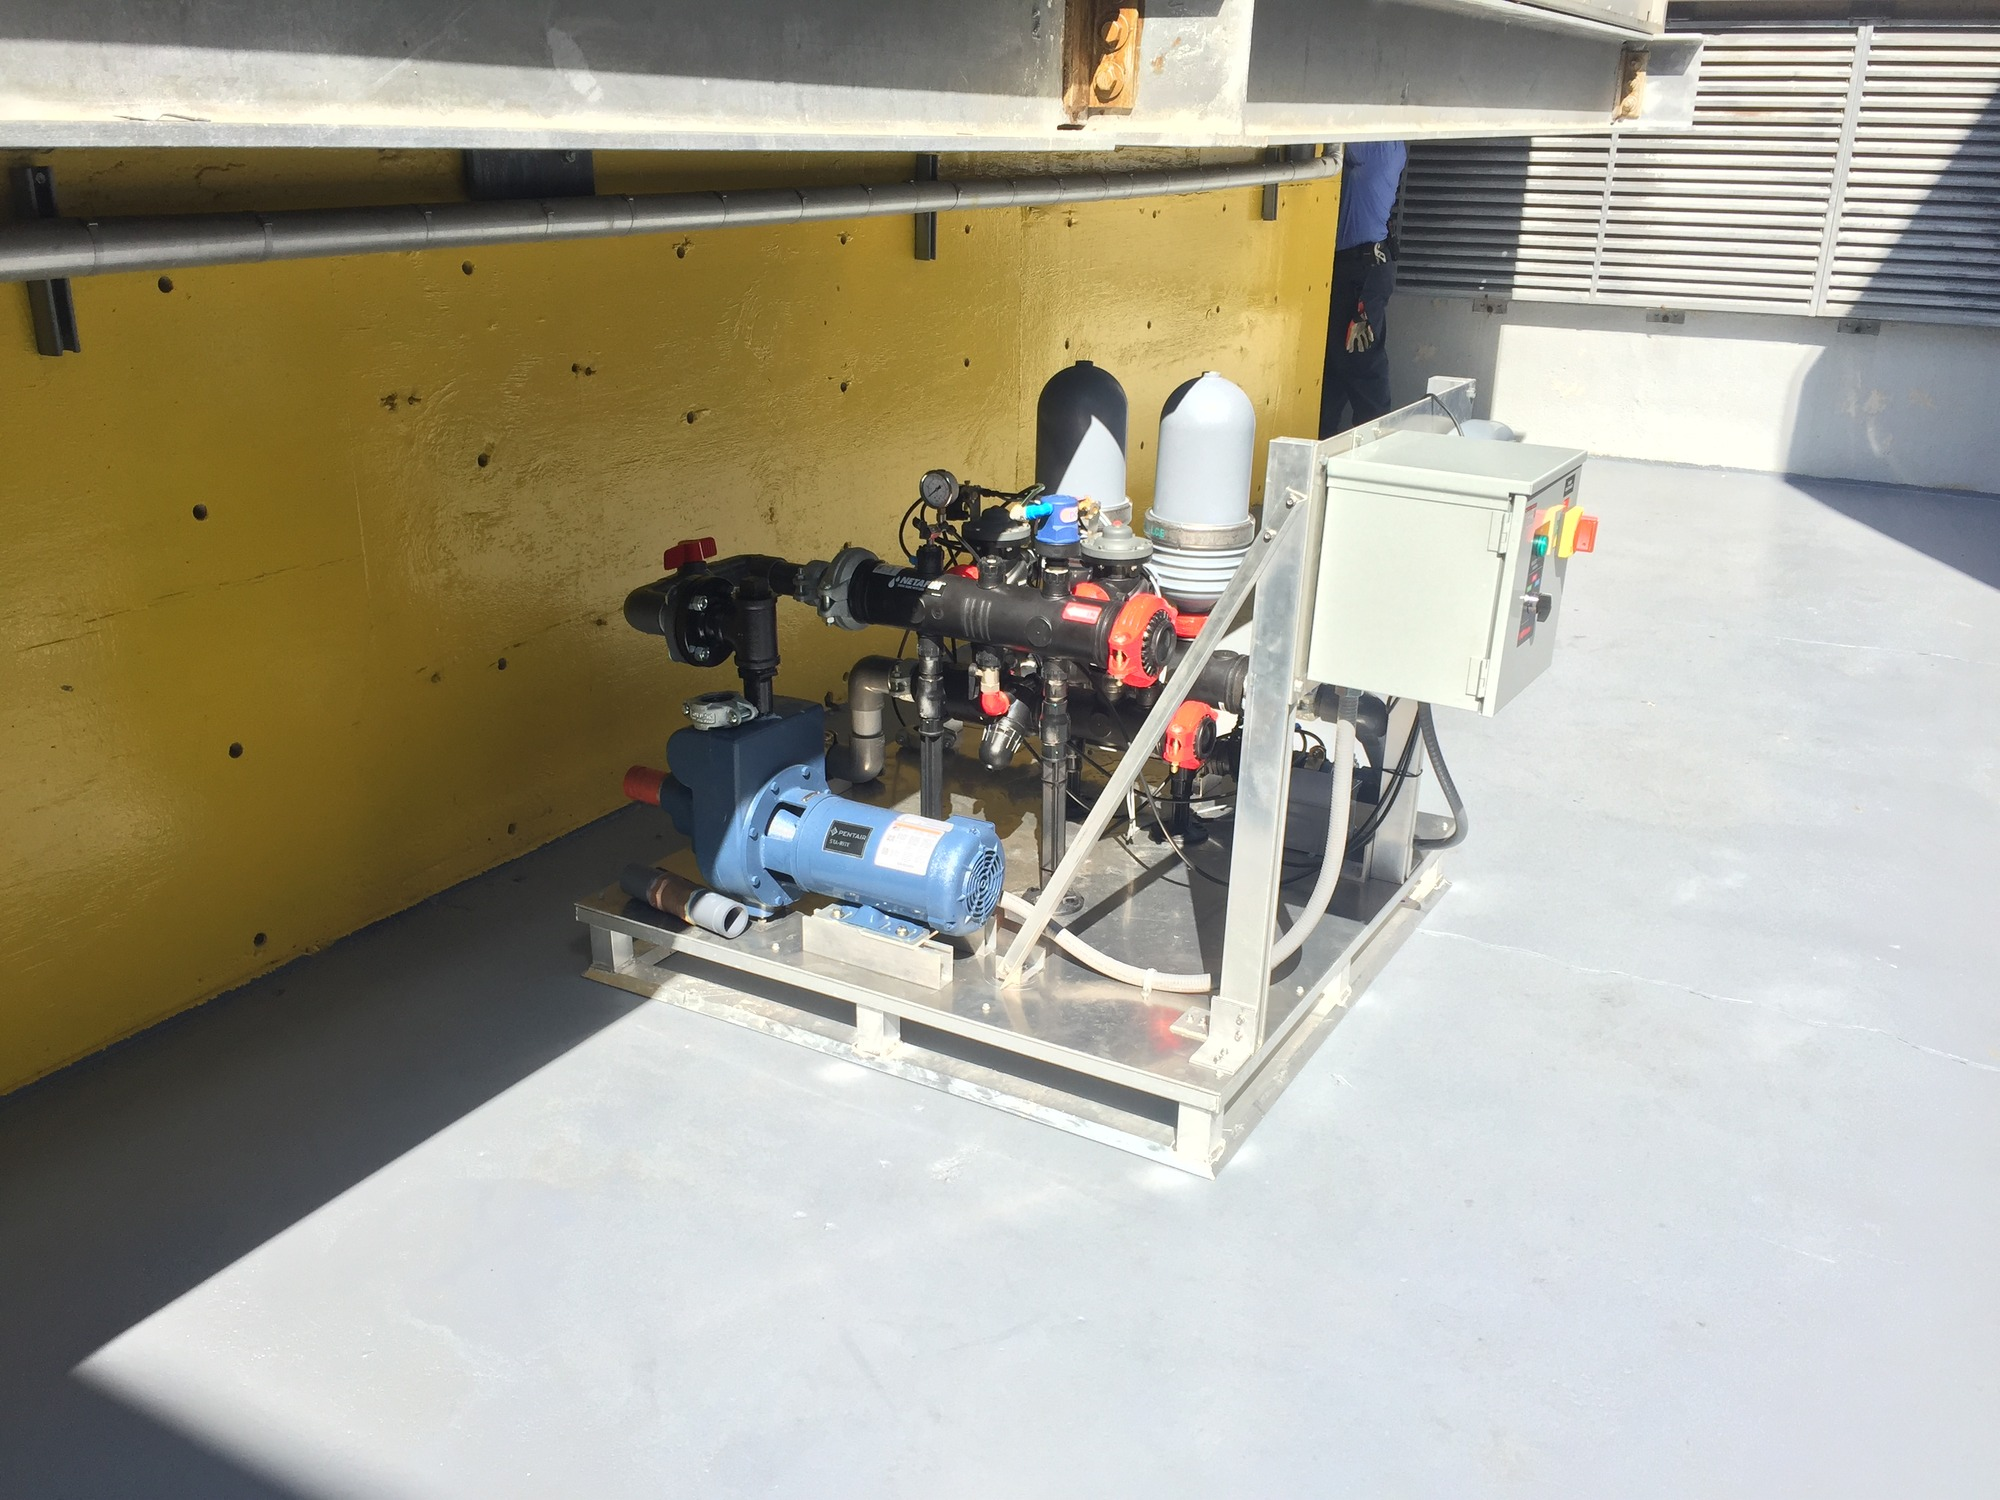 Onsite Wastewater Treatment skid